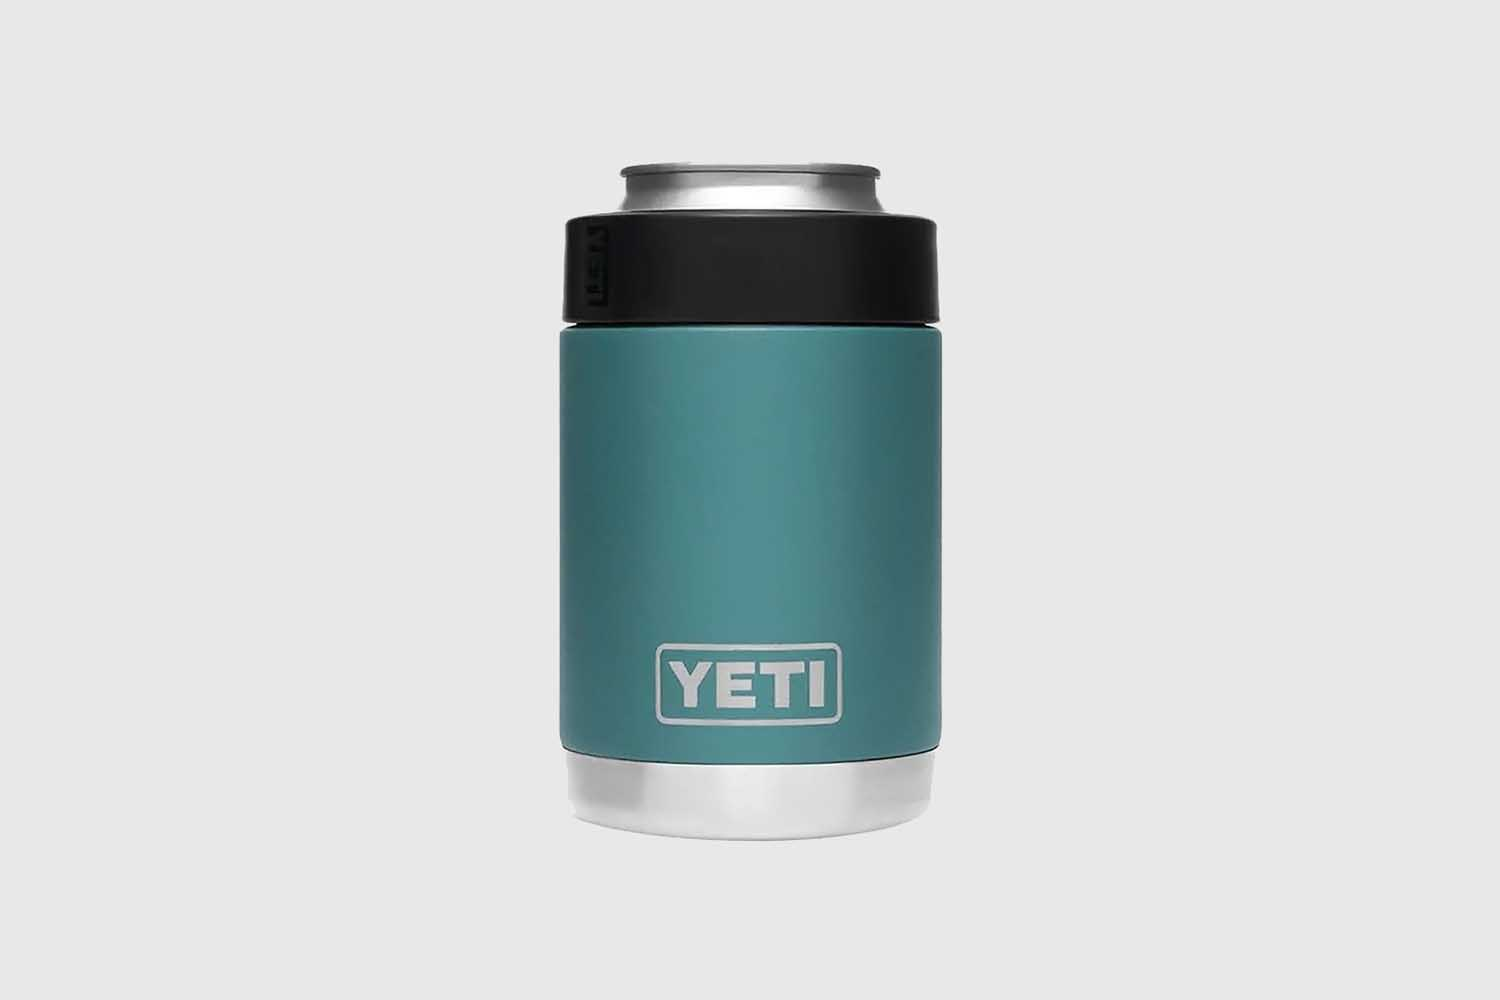 Deal: YETI's Must-Have Rambler Colster Is on Sale